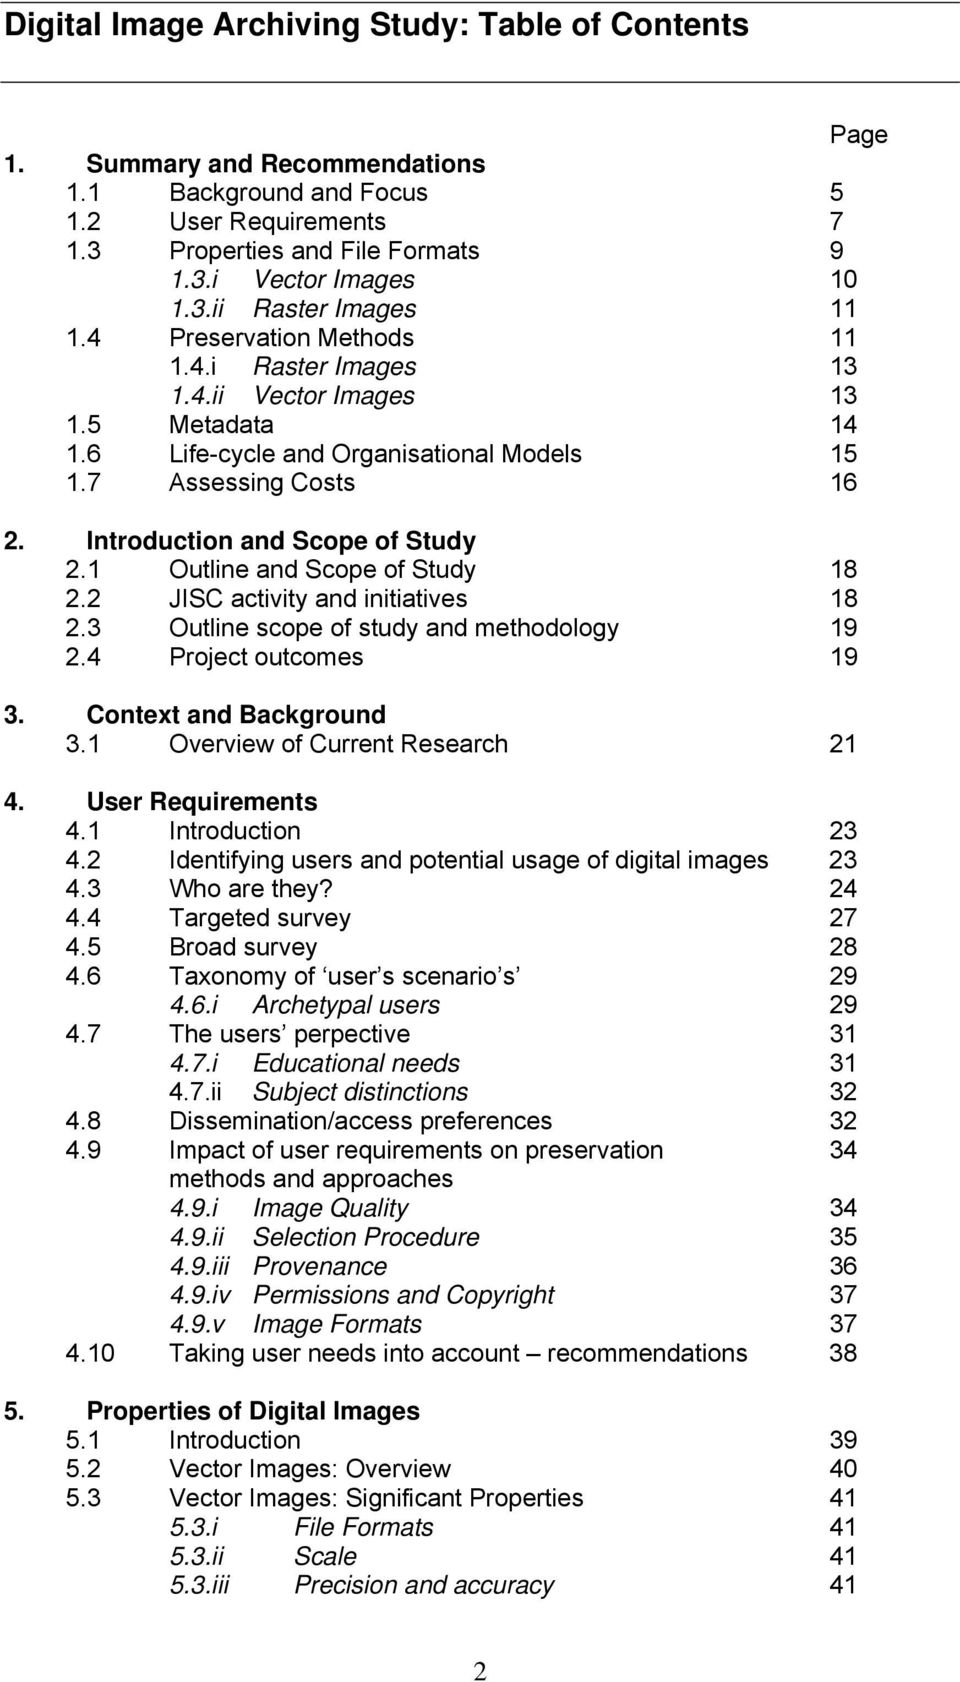 1 Outline and Scope of Study 18 2.2 JISC activity and initiatives 18 2.3 Outline scope of study and methodology 19 2.4 Project outcomes 19 3. Context and Background 3.